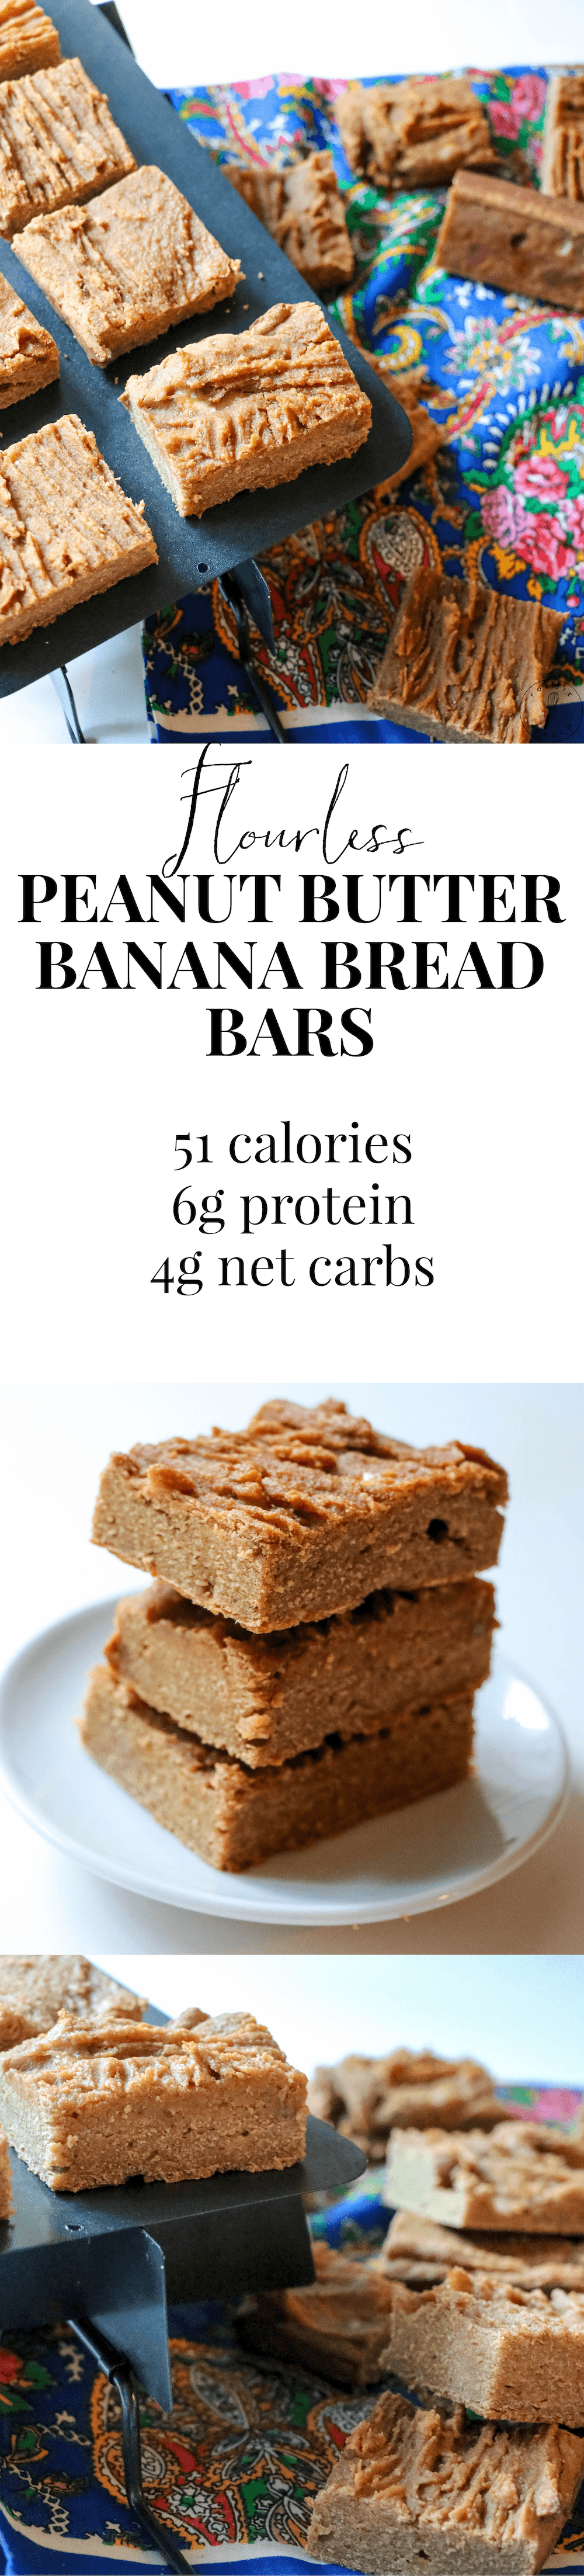 banana-bars-pinterest